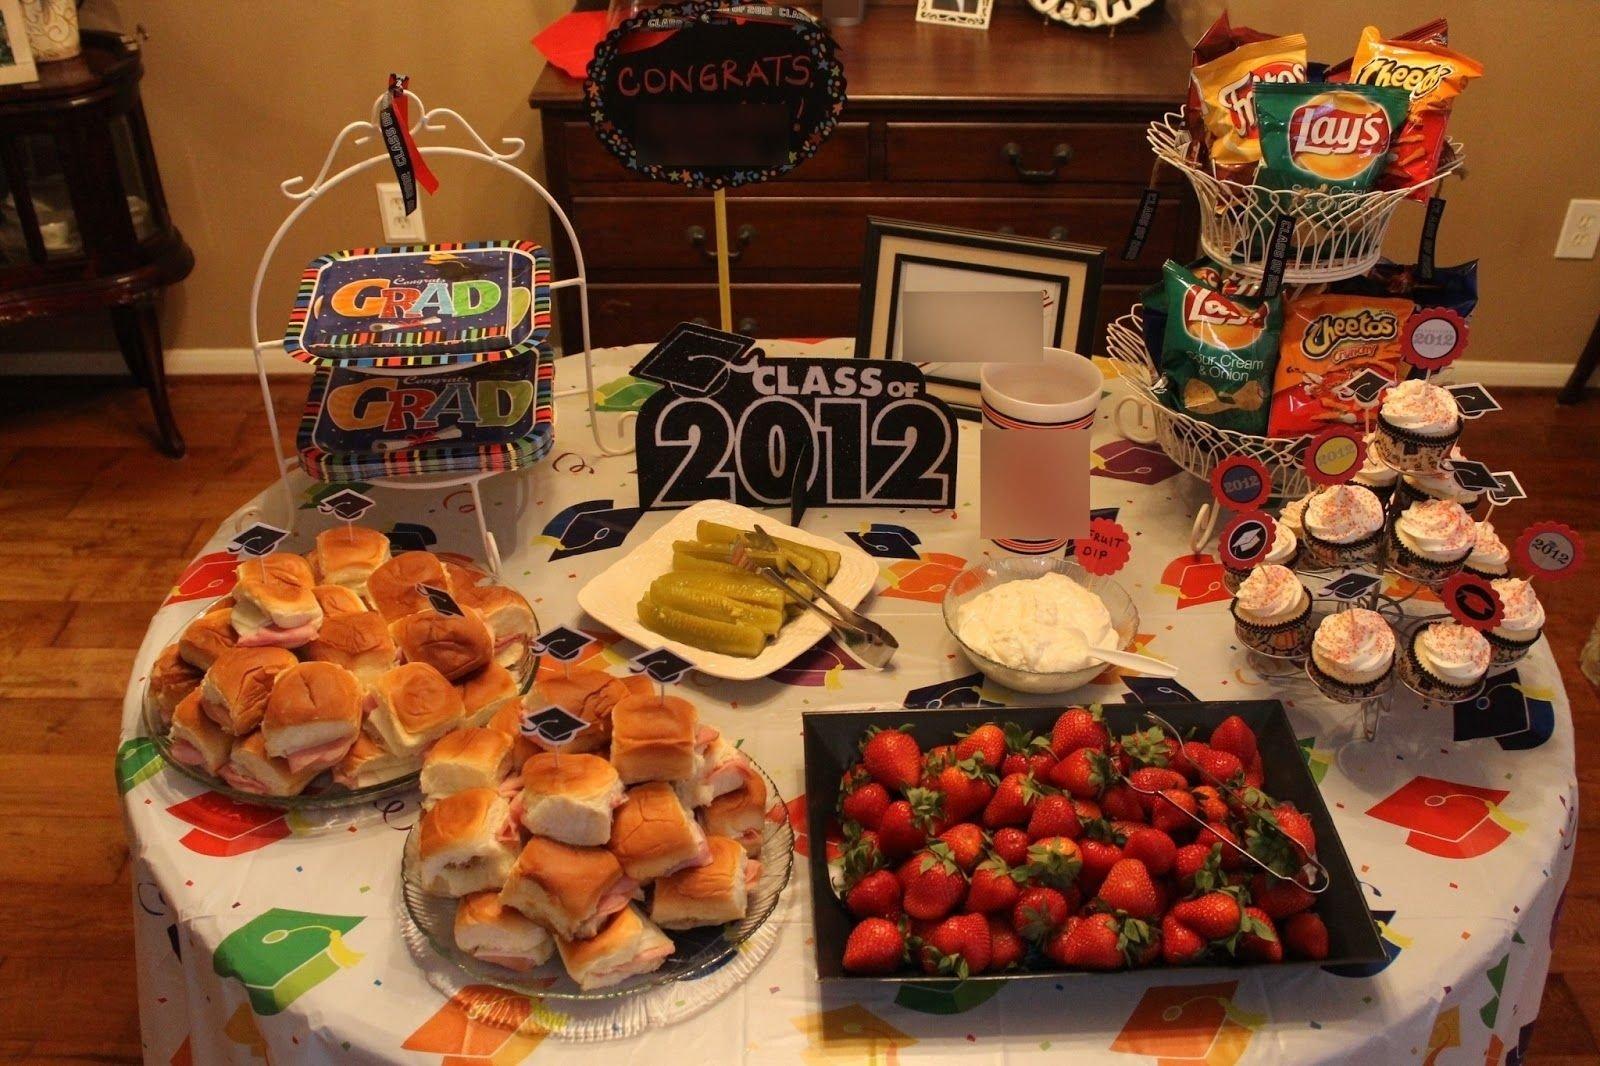 10 Fabulous Easy Graduation Party Food Ideas easy finger foods for outdoor parties this is just a simple banner 1 2021